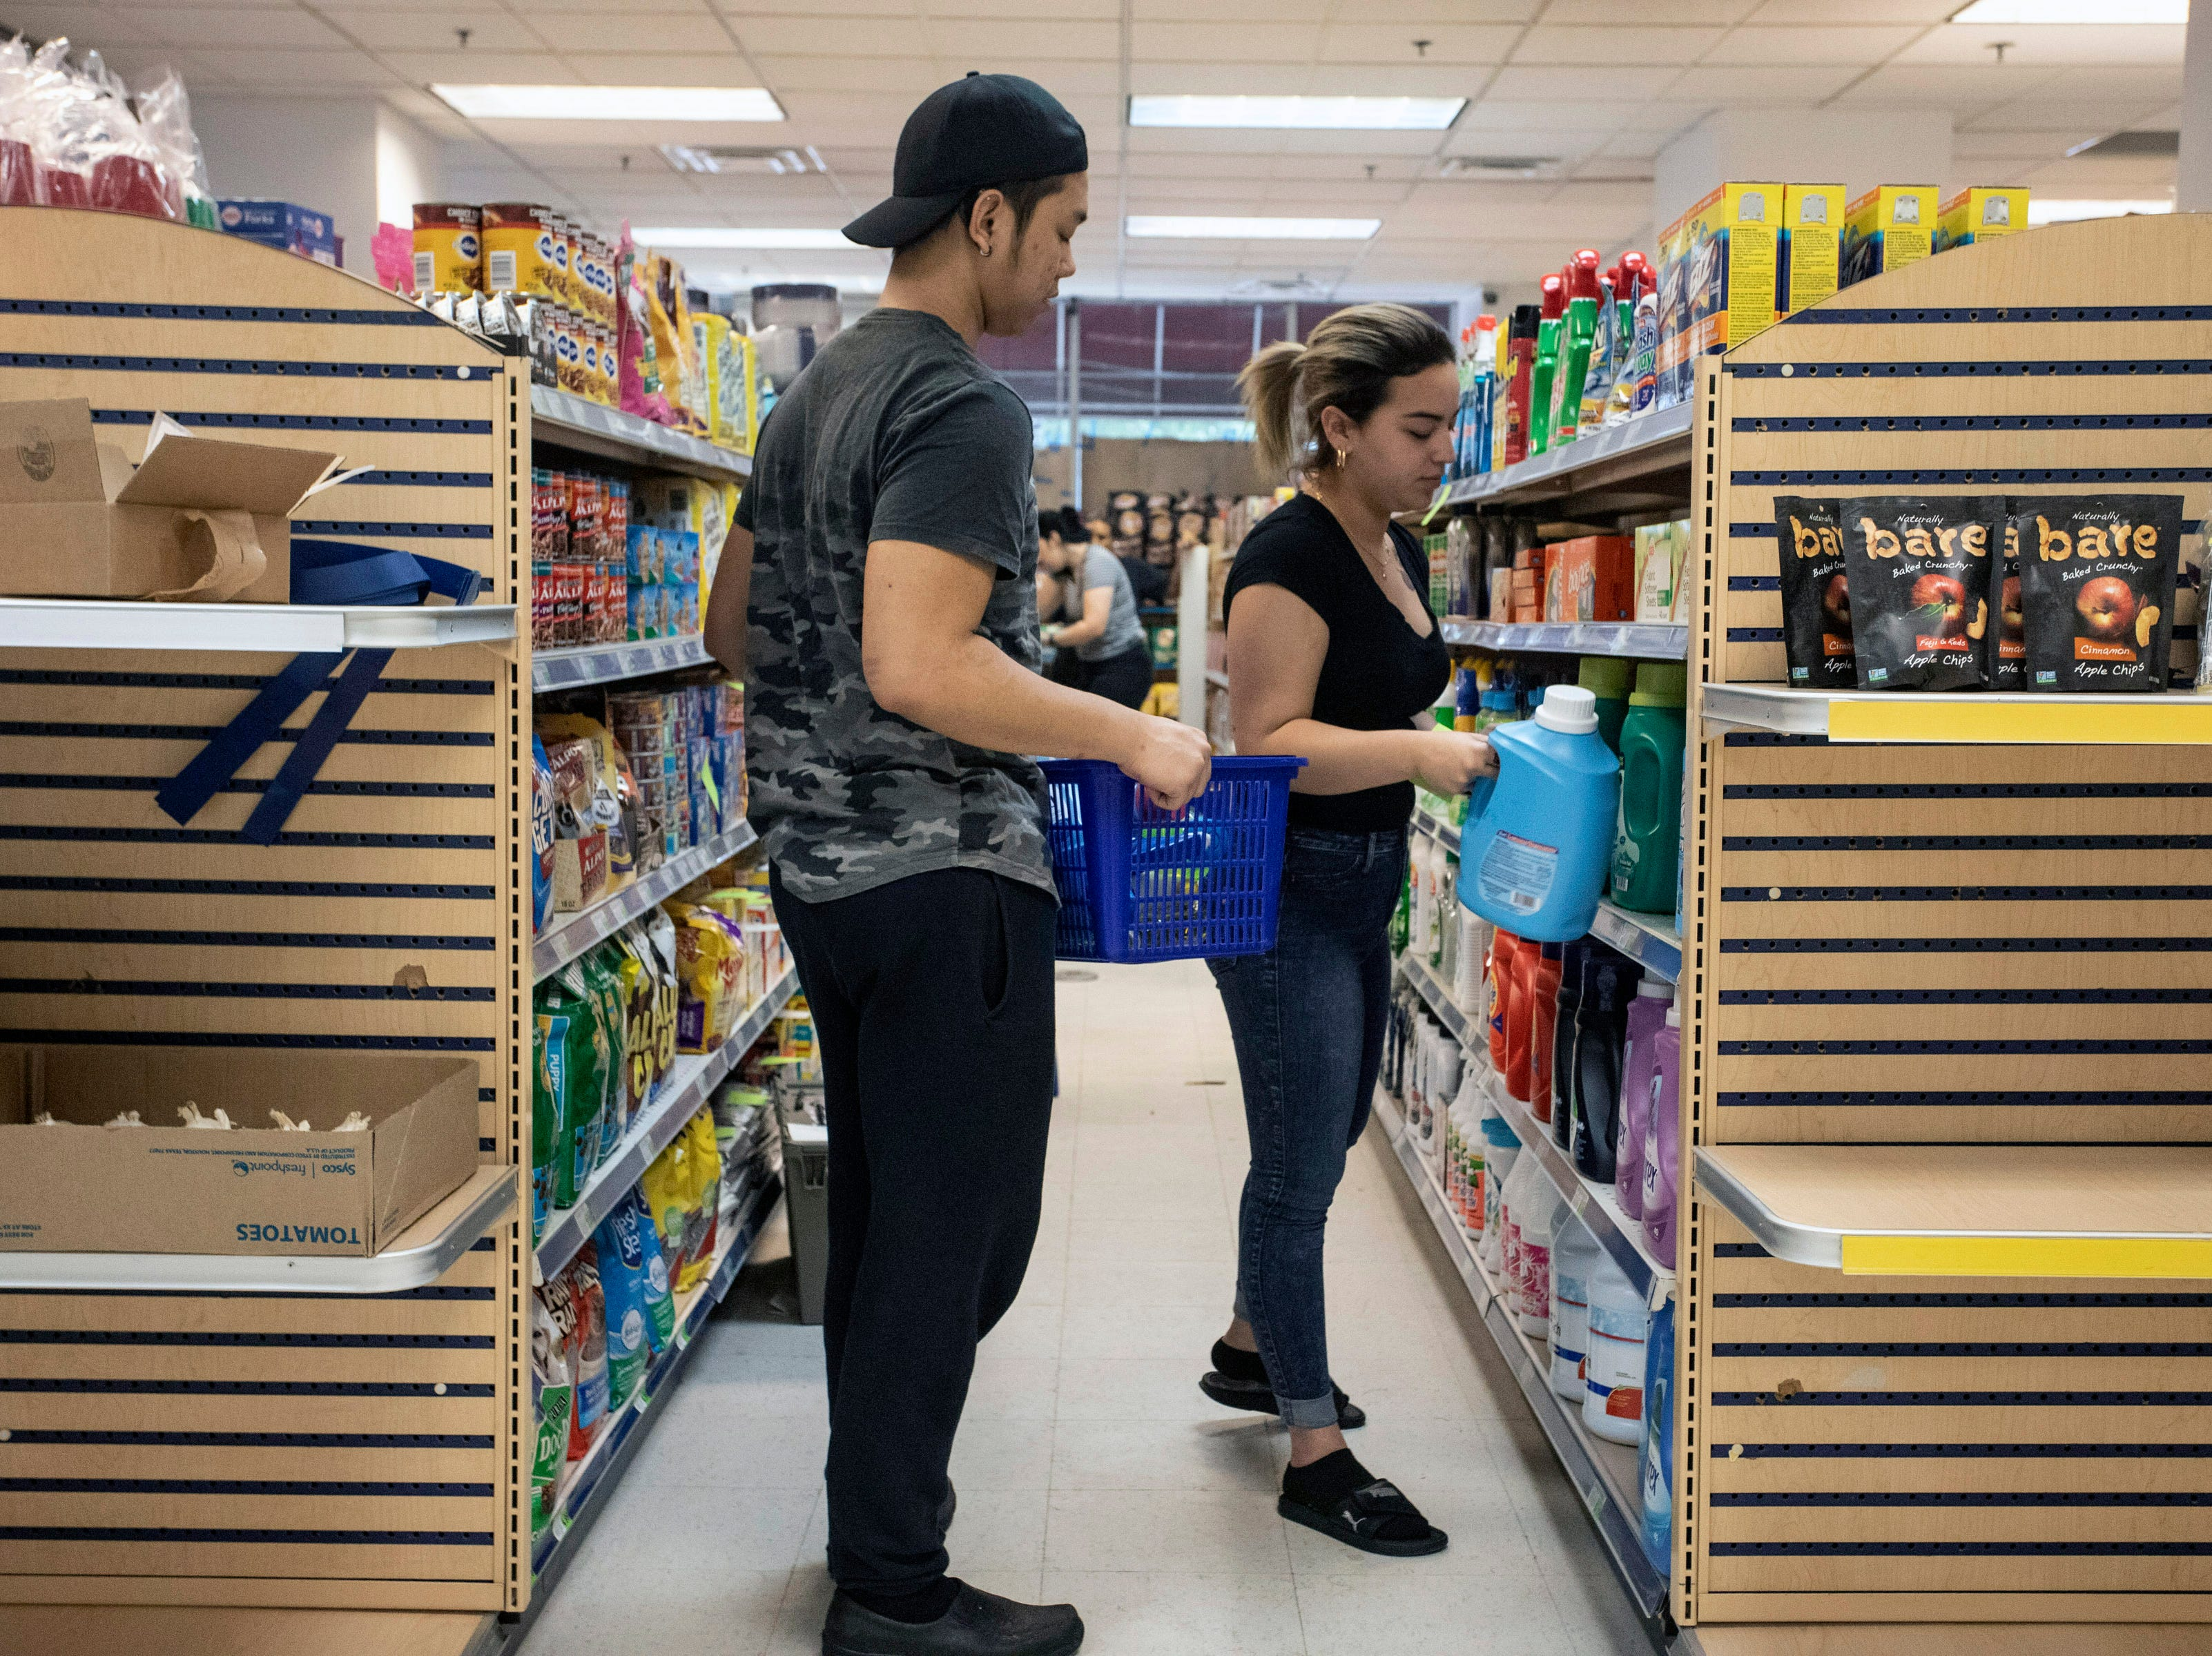 Stockers at the Superior Market & Deli sort, arrange, and fill the shelves of the 5,400-square-foot bodega with items on Friday morning. 5/10/19